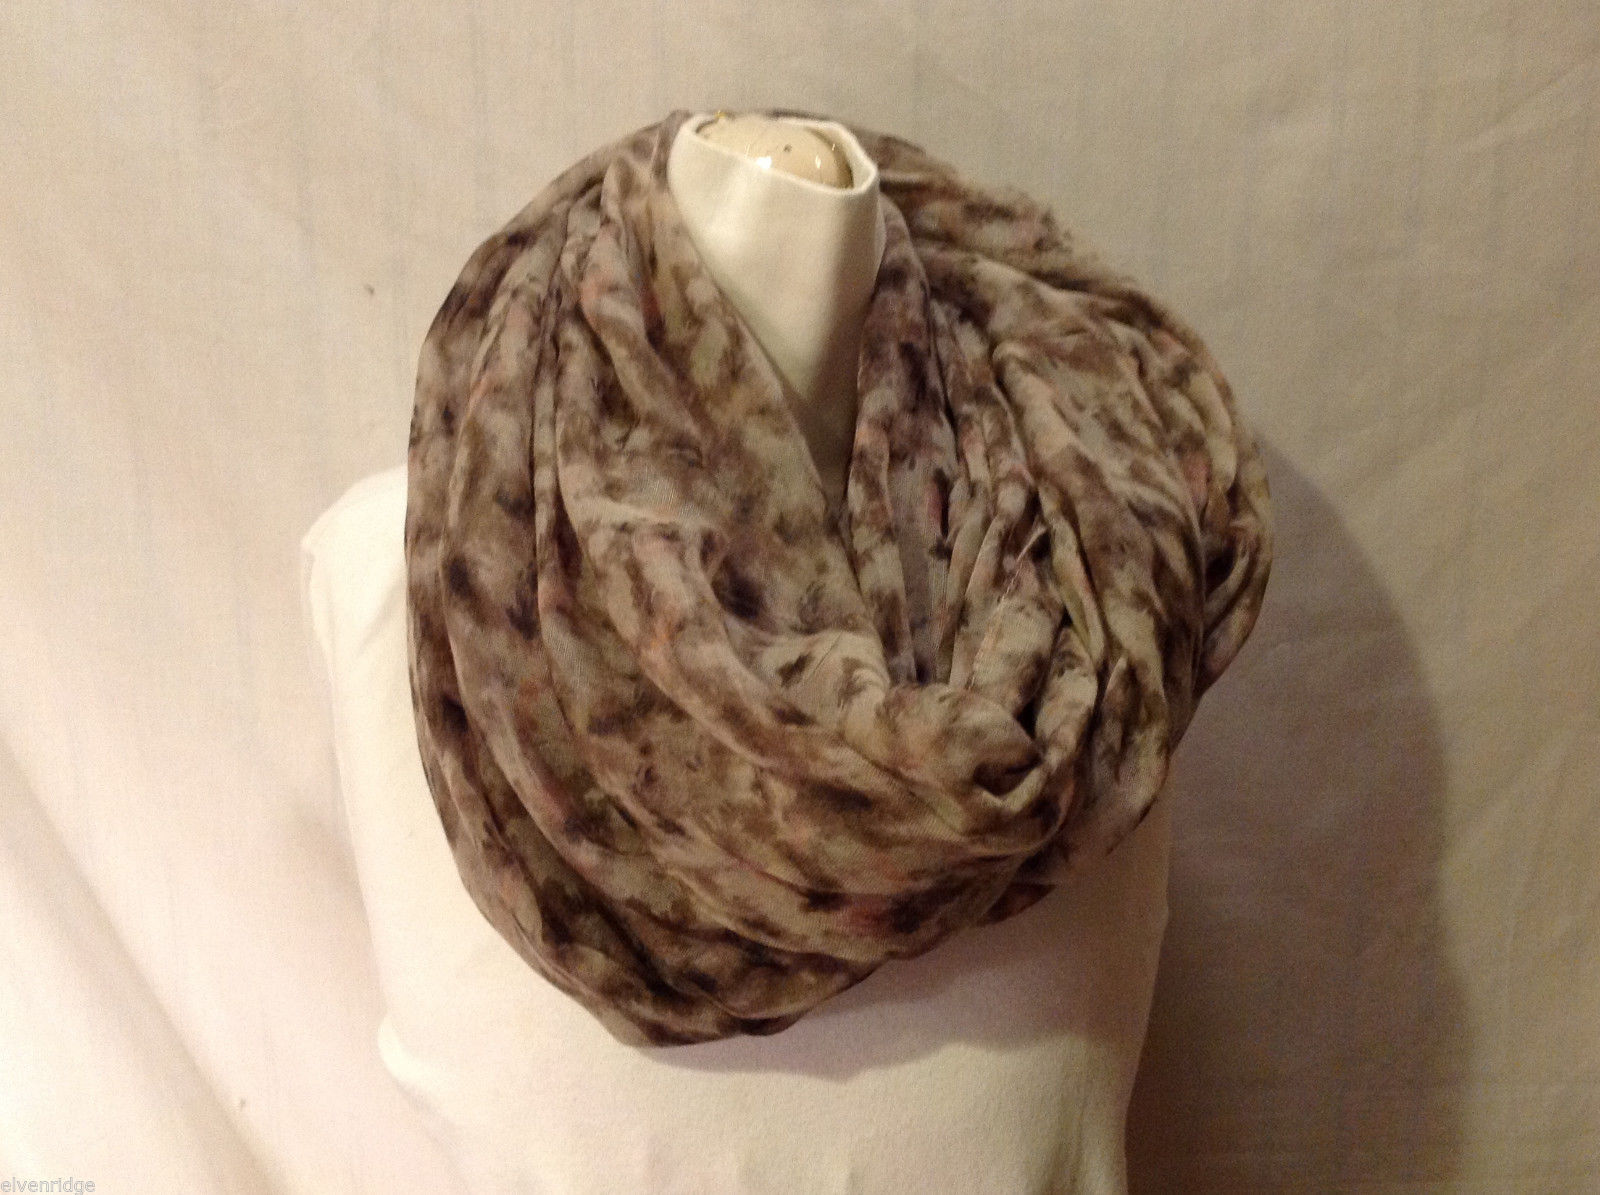 Women's Lightweight Silky-Feel Infinity Scarf Mottled Taupe Tan Brown Pink